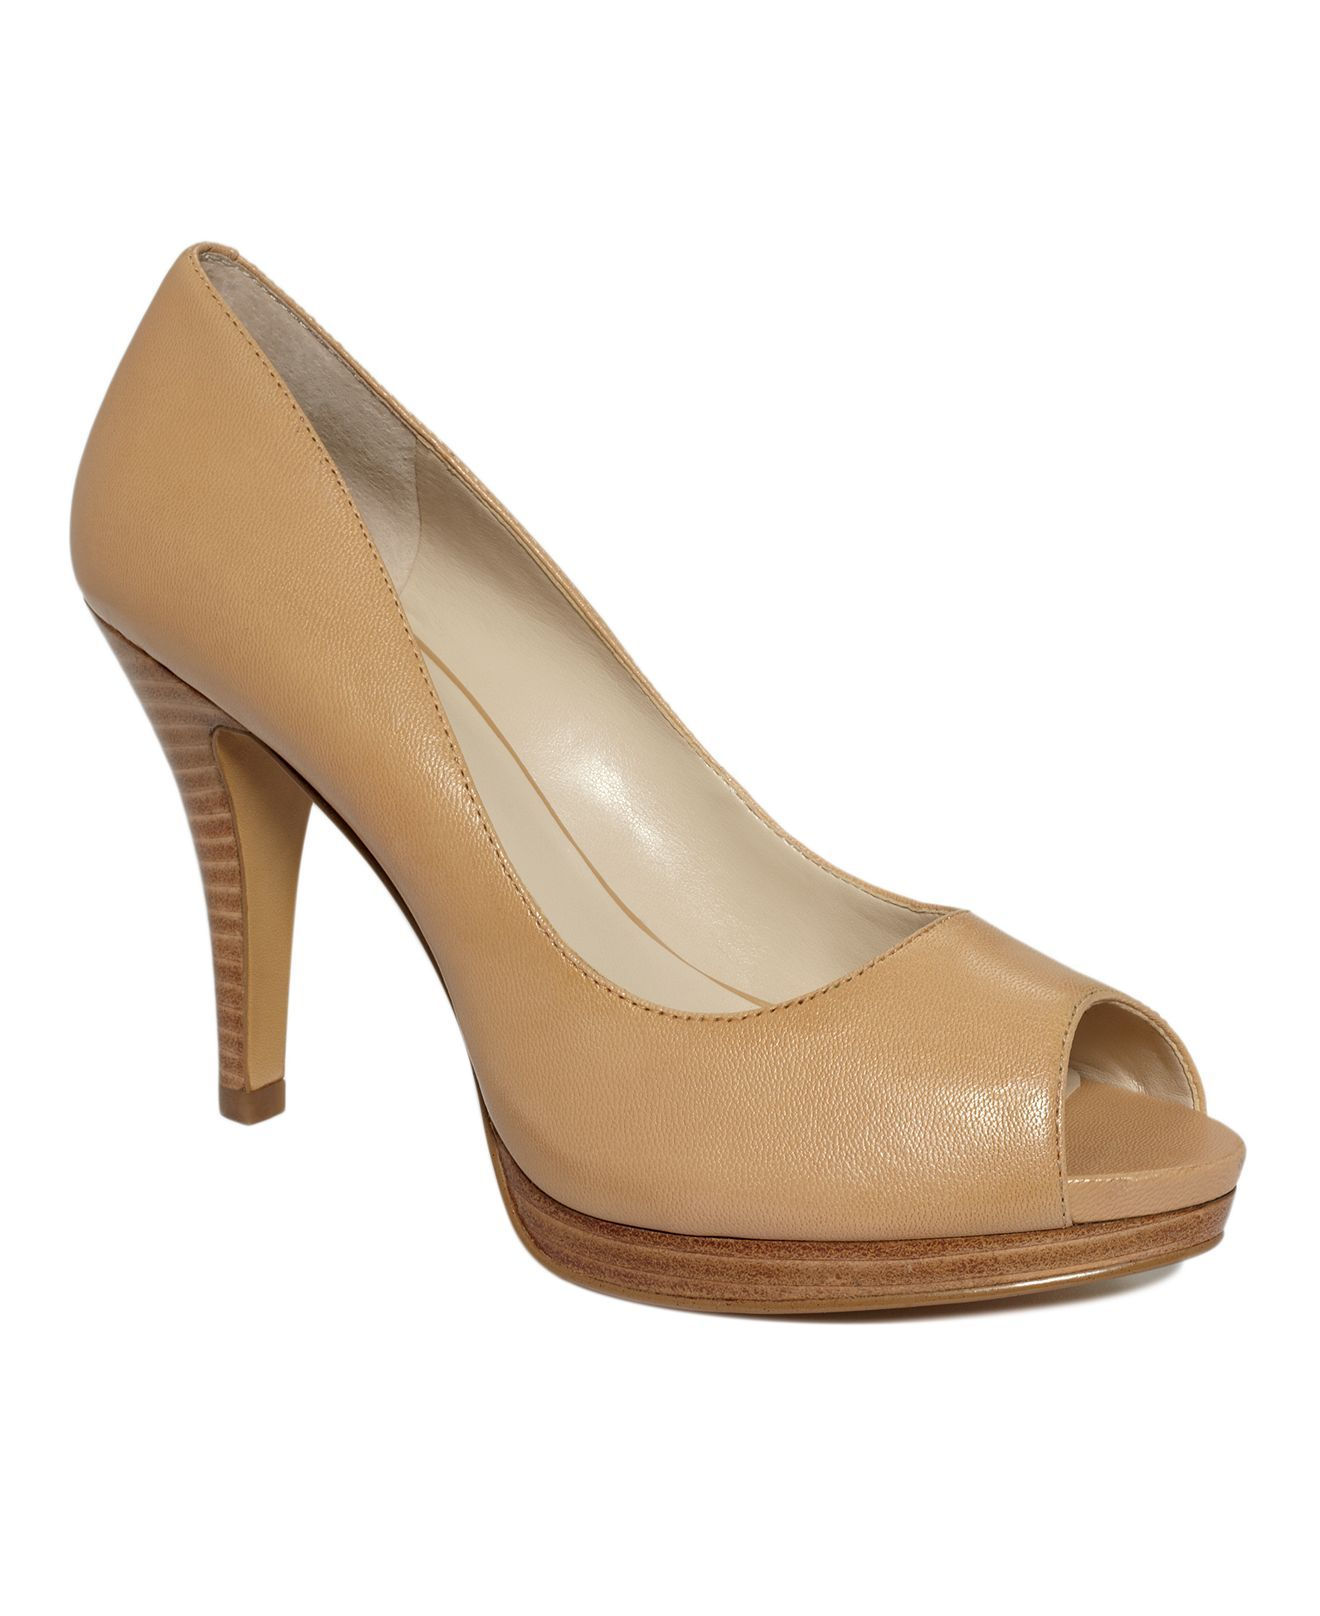 6849276560c Nine West Shoes